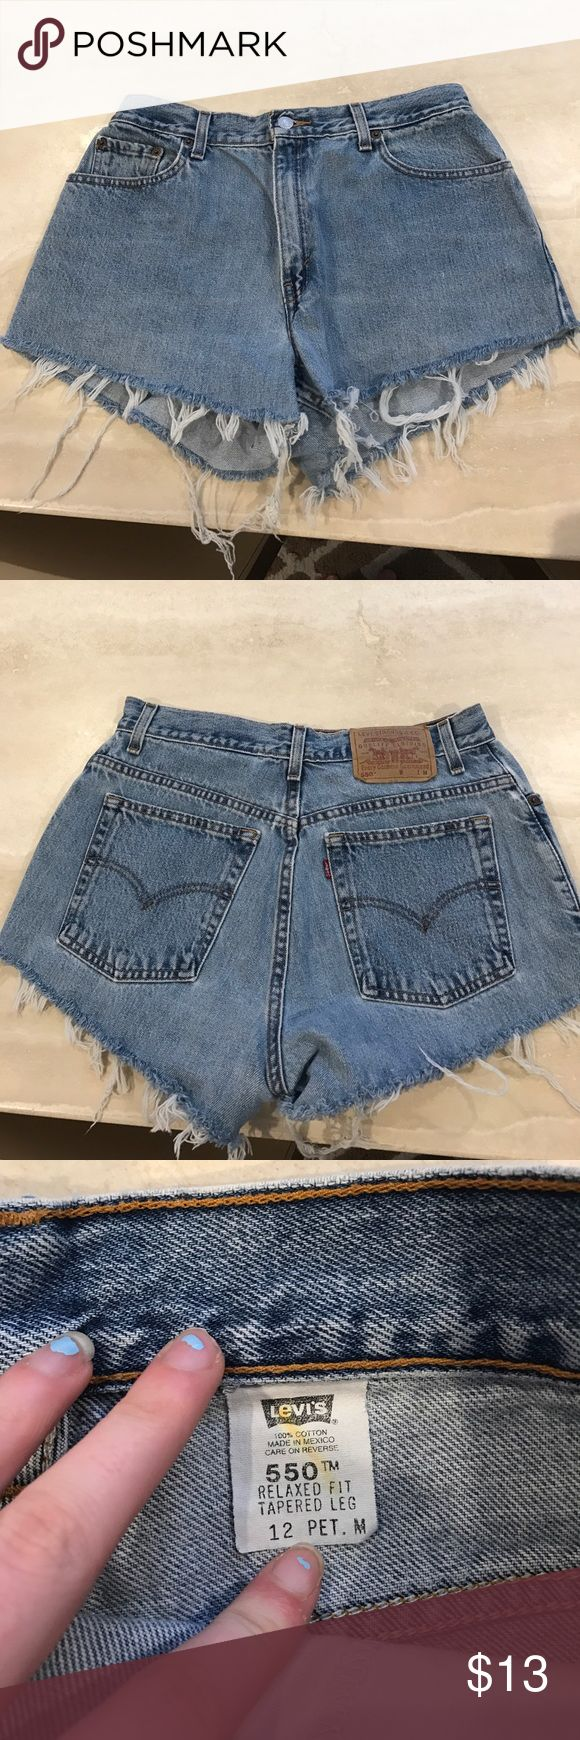 ADORABLE LEVIS HIGH RISE JEAN SHORTS High rise denim Jean shorts, silver button with zipper, fraying at bottom, pockets on back and in front Levi's Shorts